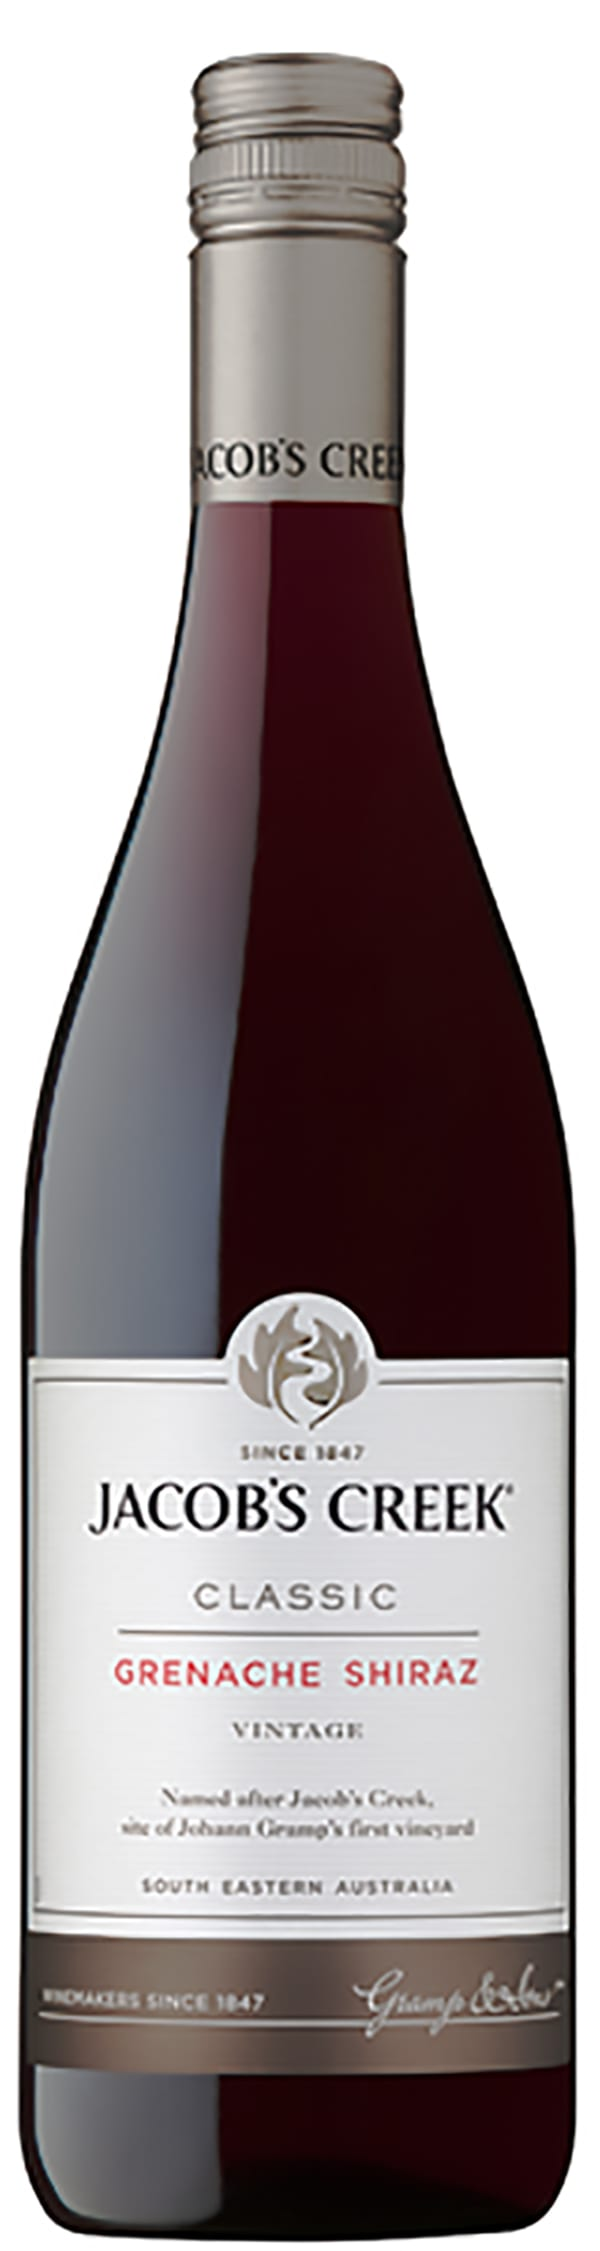 Jacob's Creek Grenache Shiraz 2017